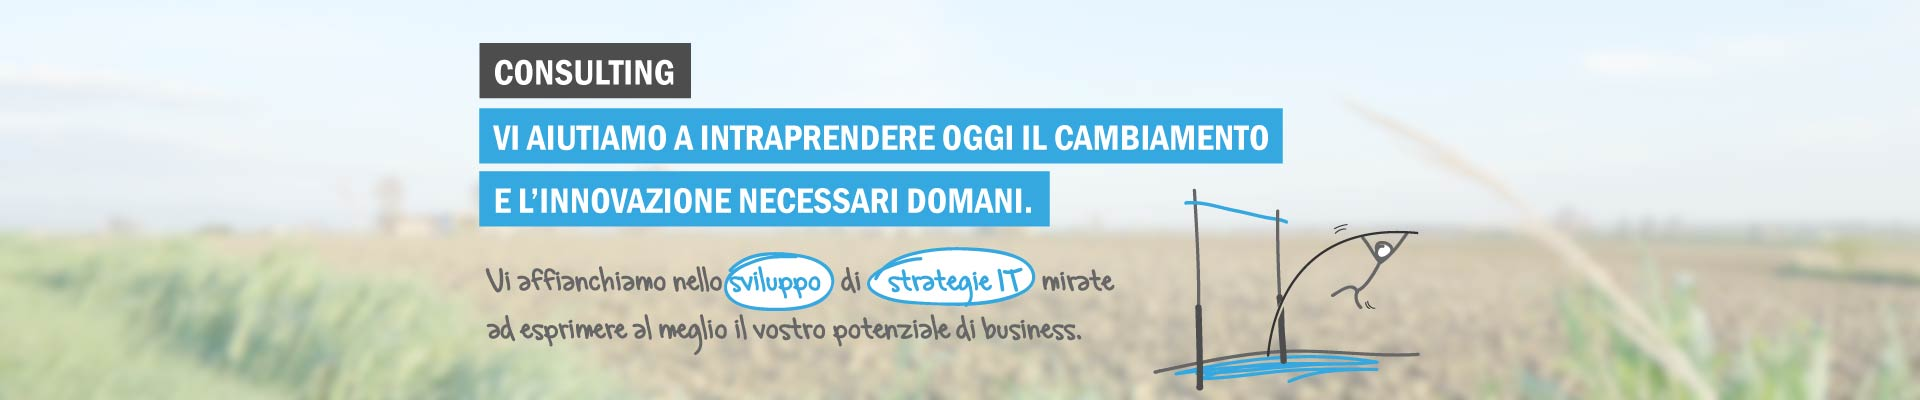 slide_consulting_45percento